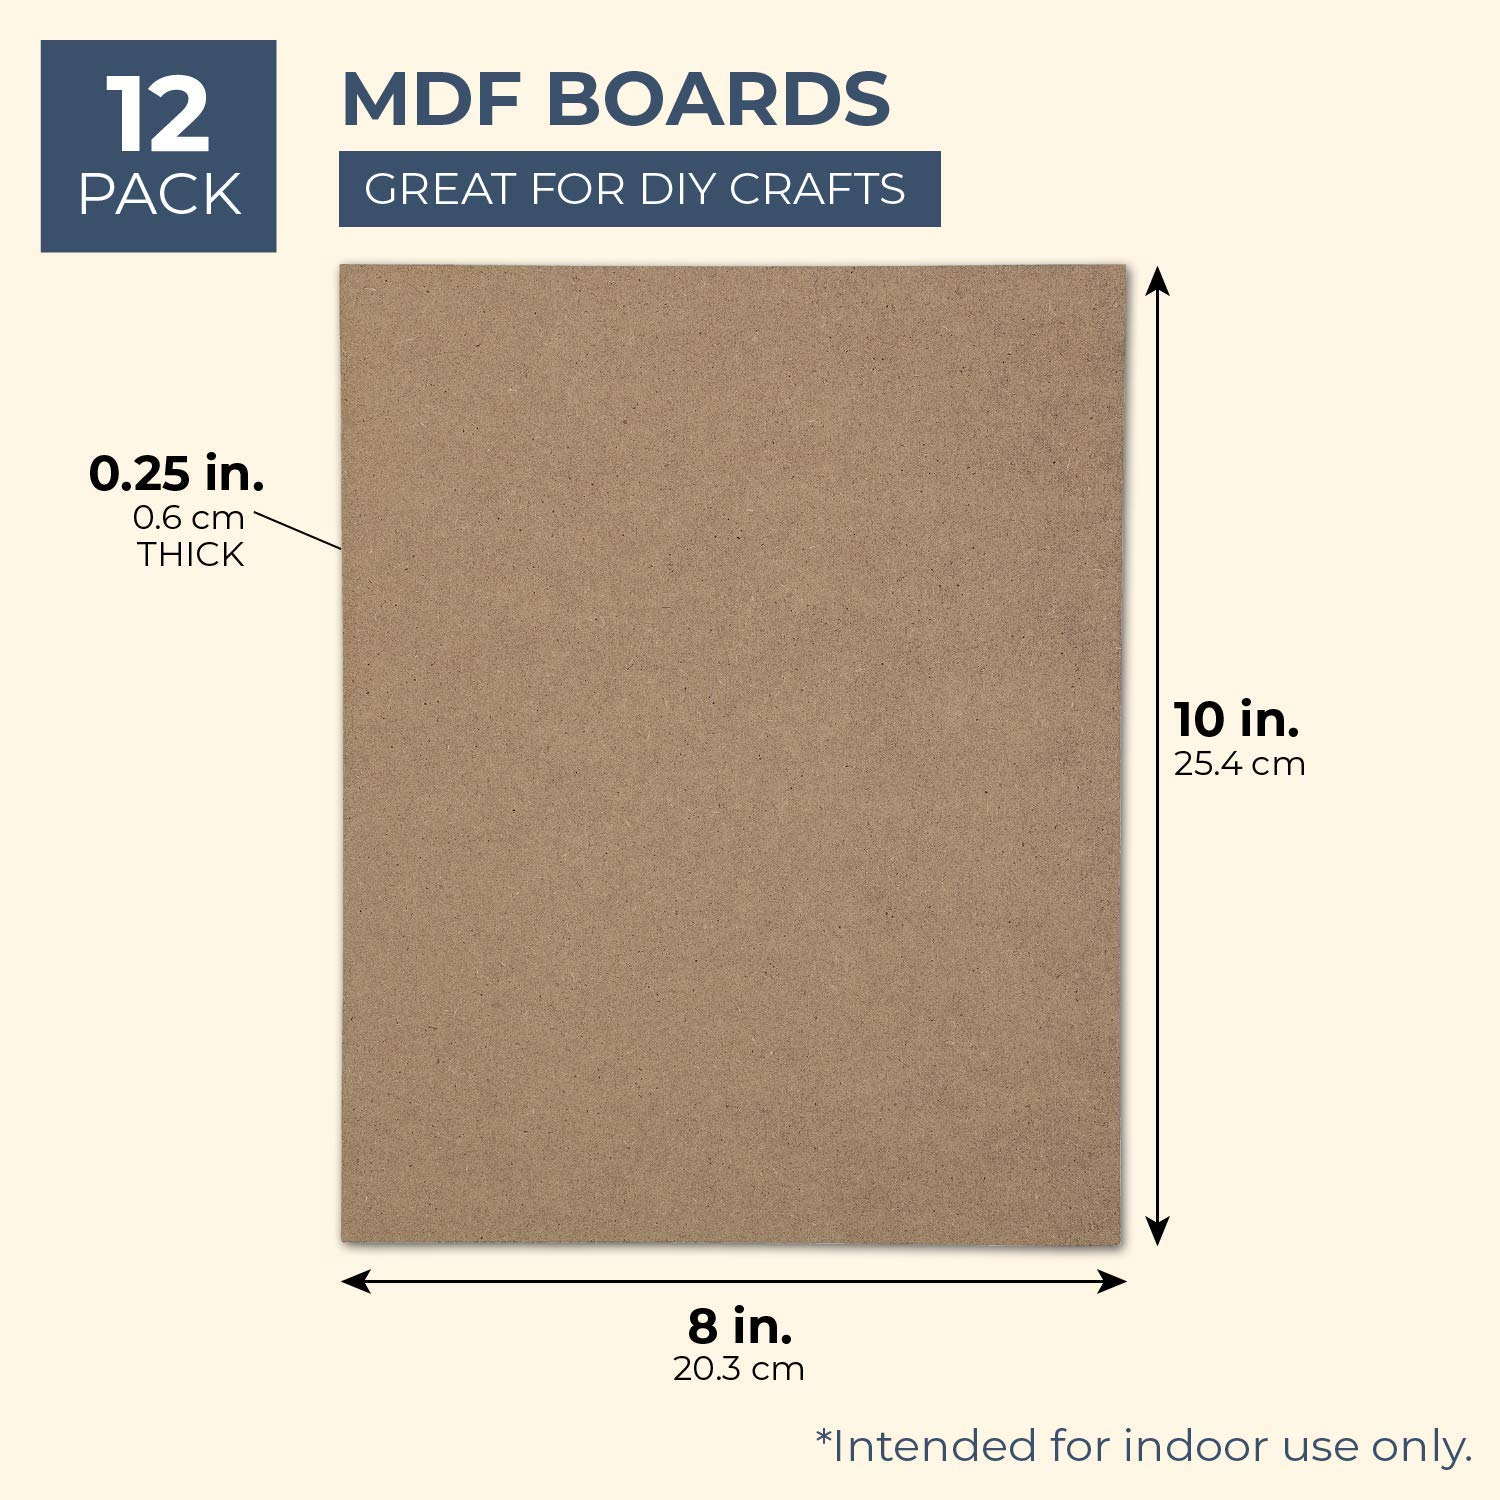 12 Pack 8 x 10 Inches Bright Creations MDF Board